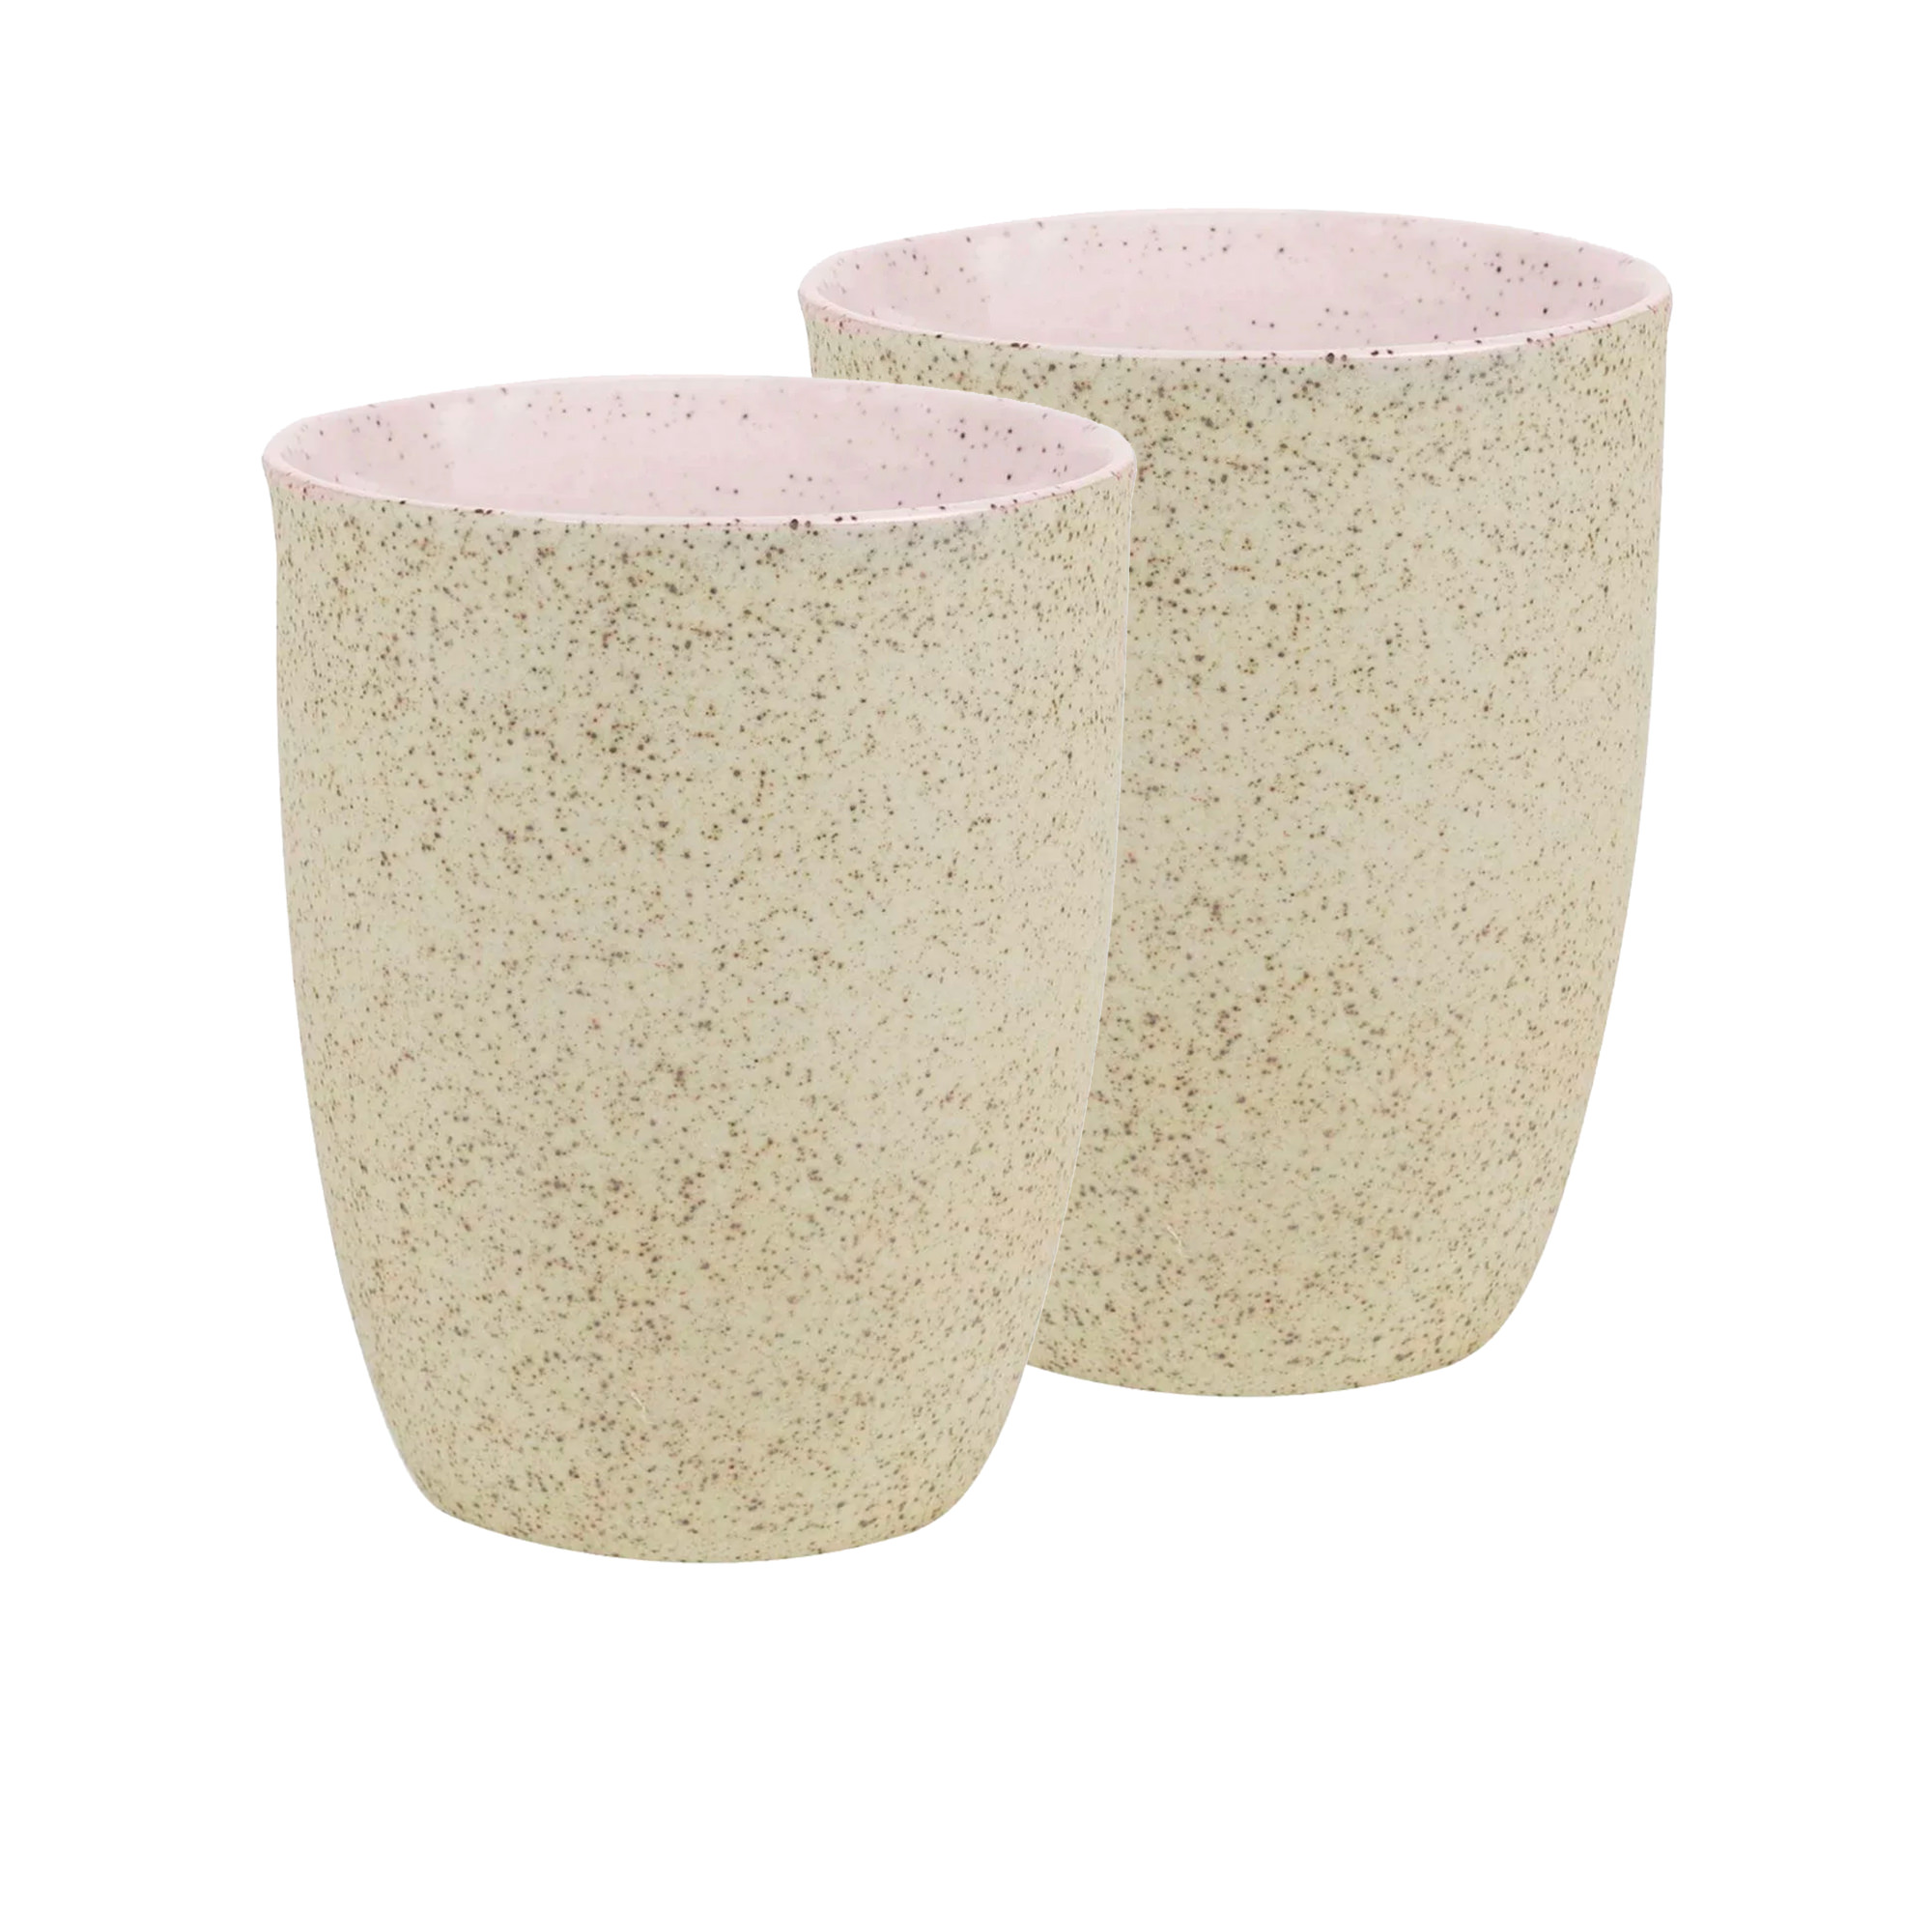 Robert Gordon Granite 2pc Latte Cup Set 330ml Pink